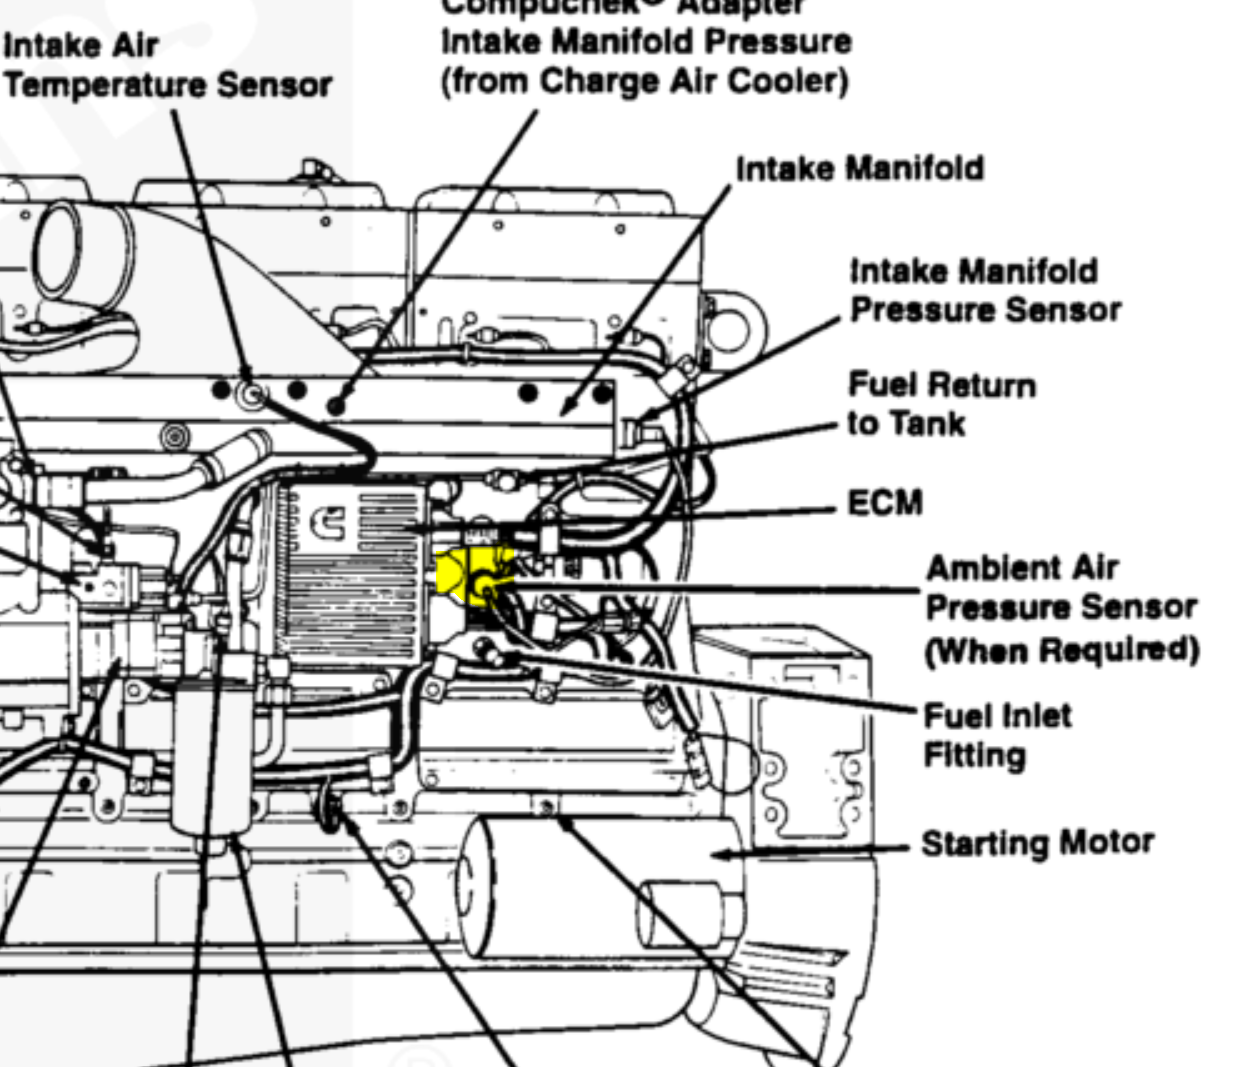 manifold air pressure sensor location